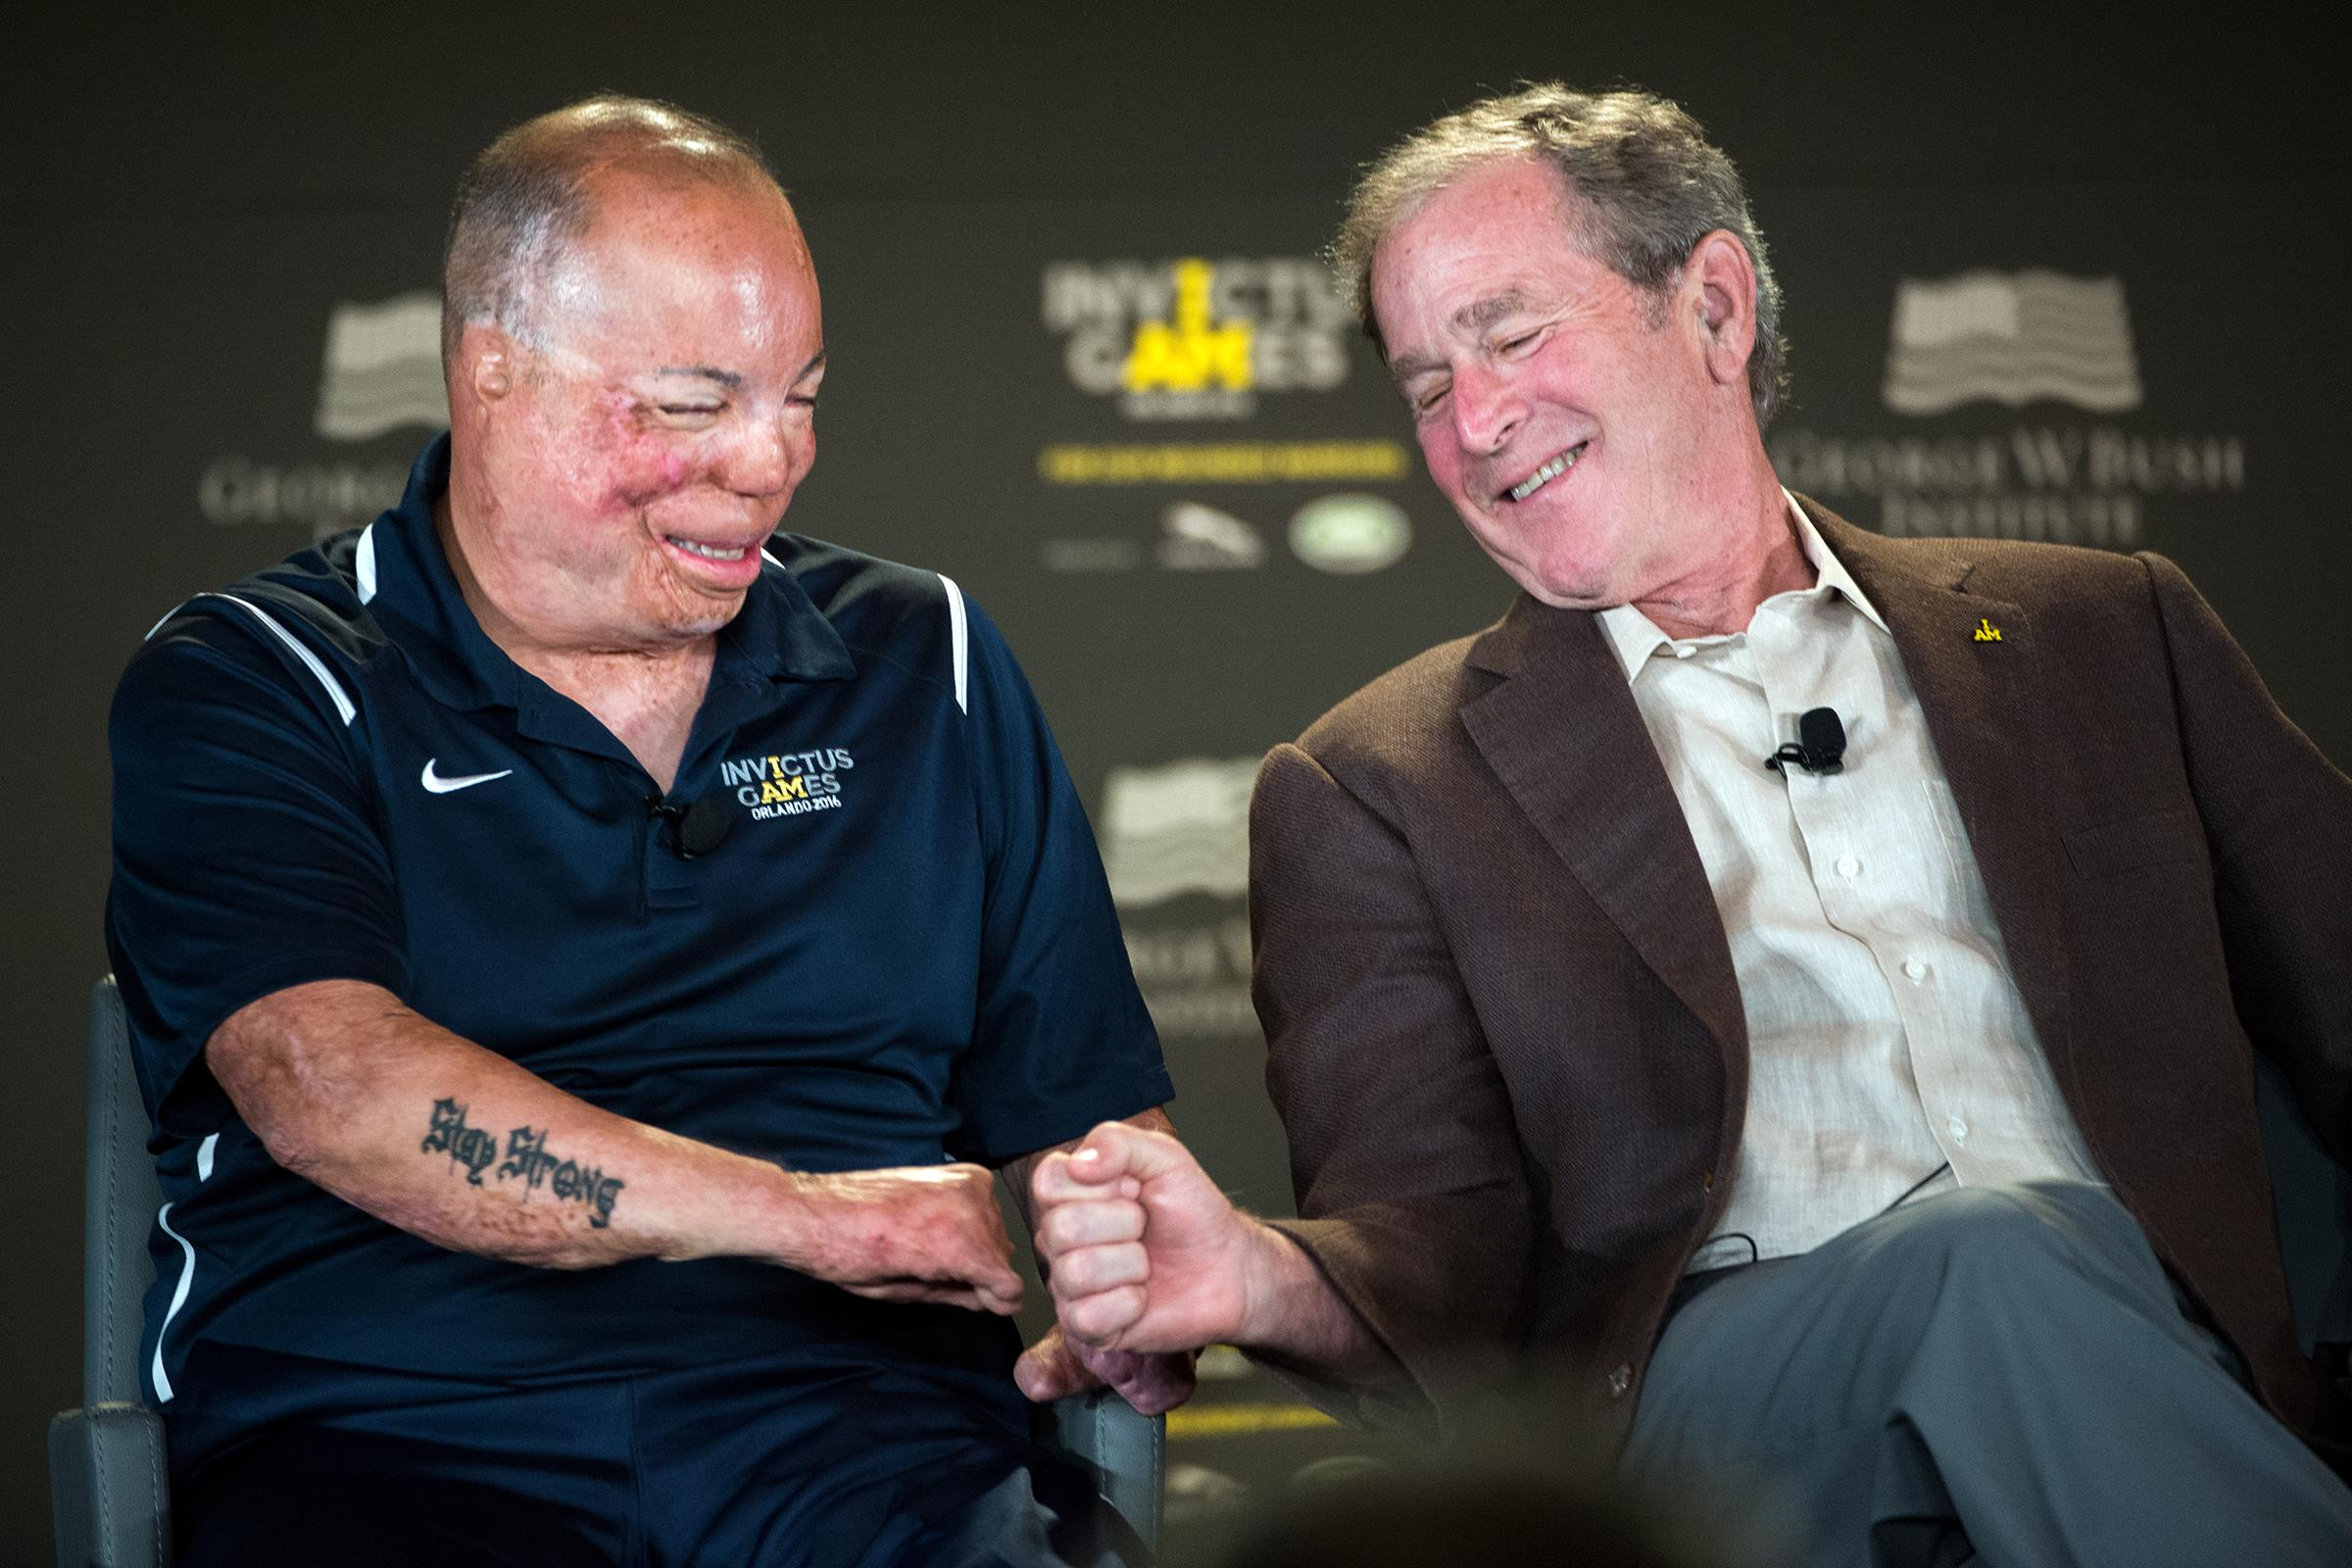 Master 2016 Del Toro Inspires Others During Invictus Games Earns Gold At Shot